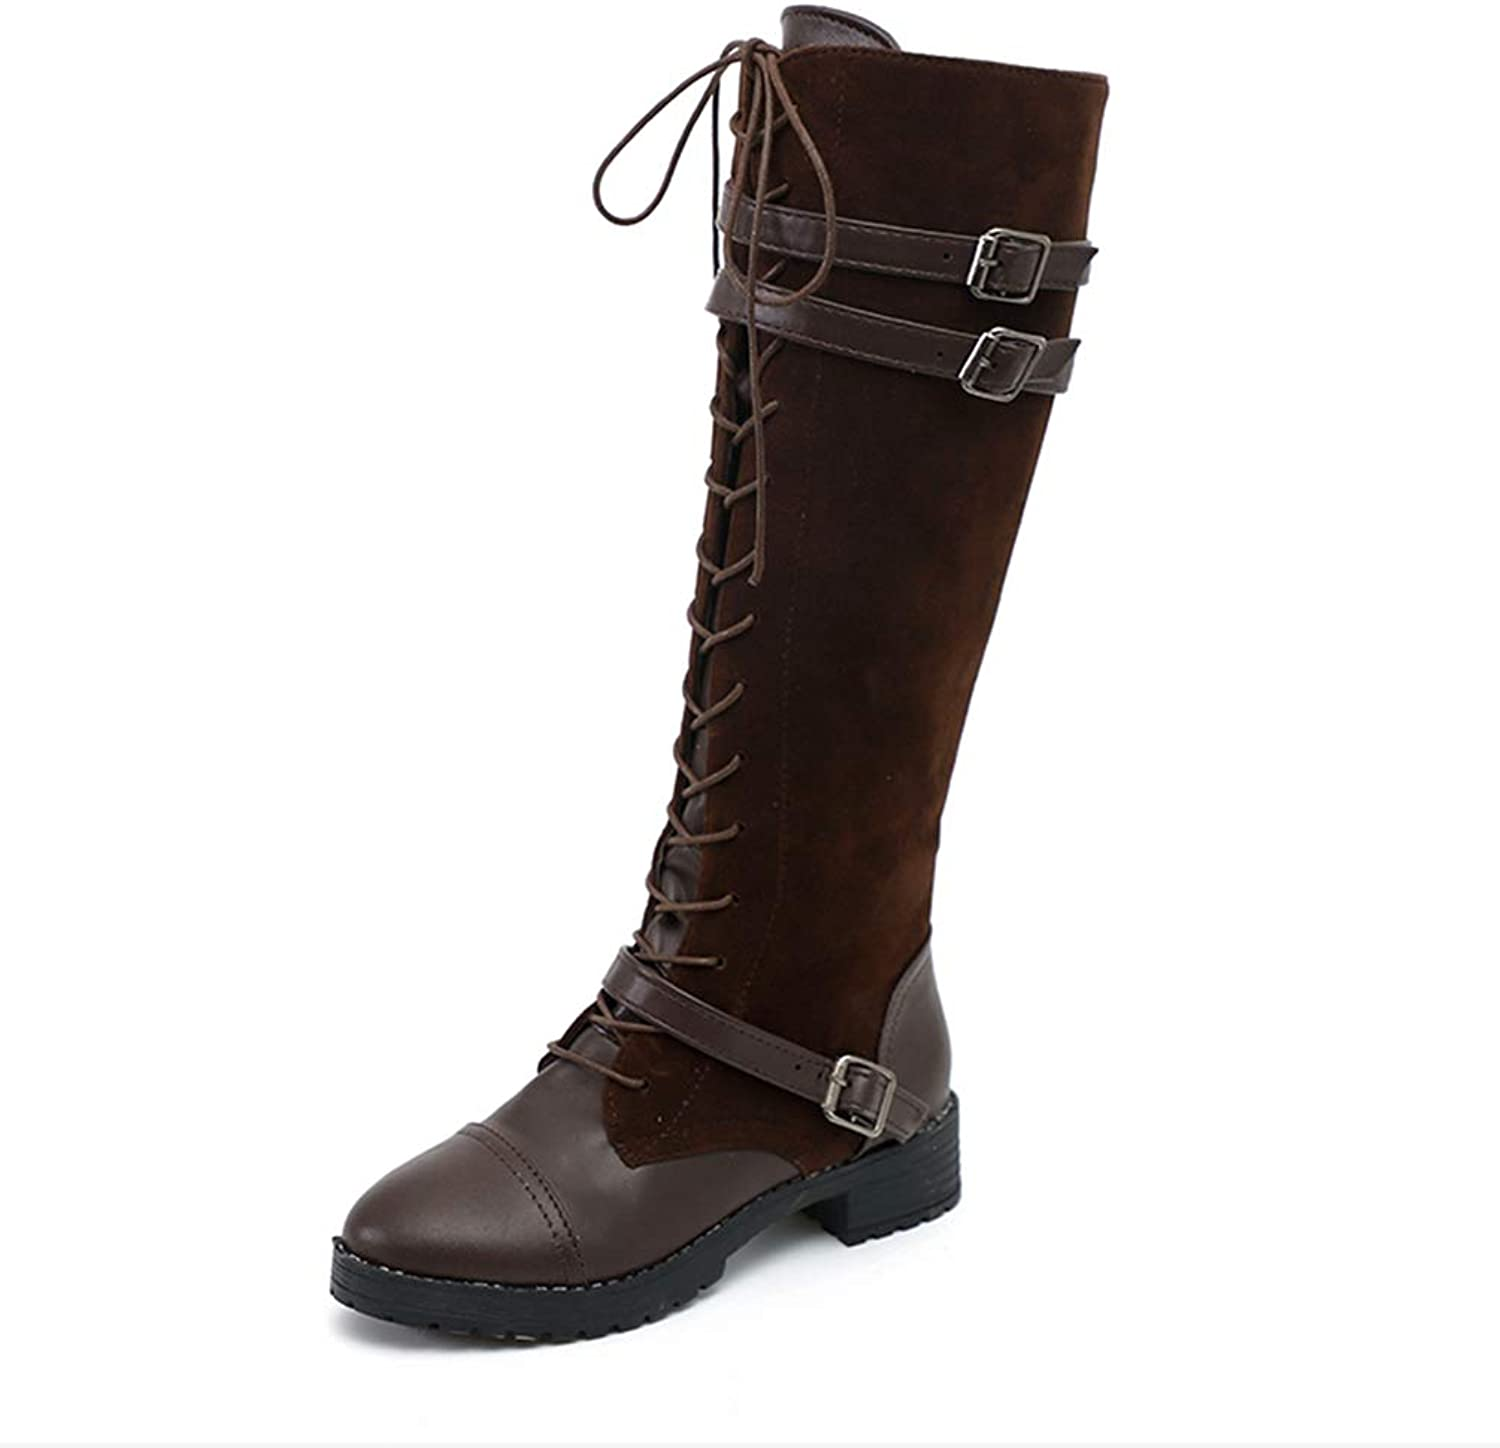 Zarbrina Womens Mid Calf Boots Lace-Up Adjustable Buckled Straps Lycra Flexible Slip On Winter Warm Martin shoes